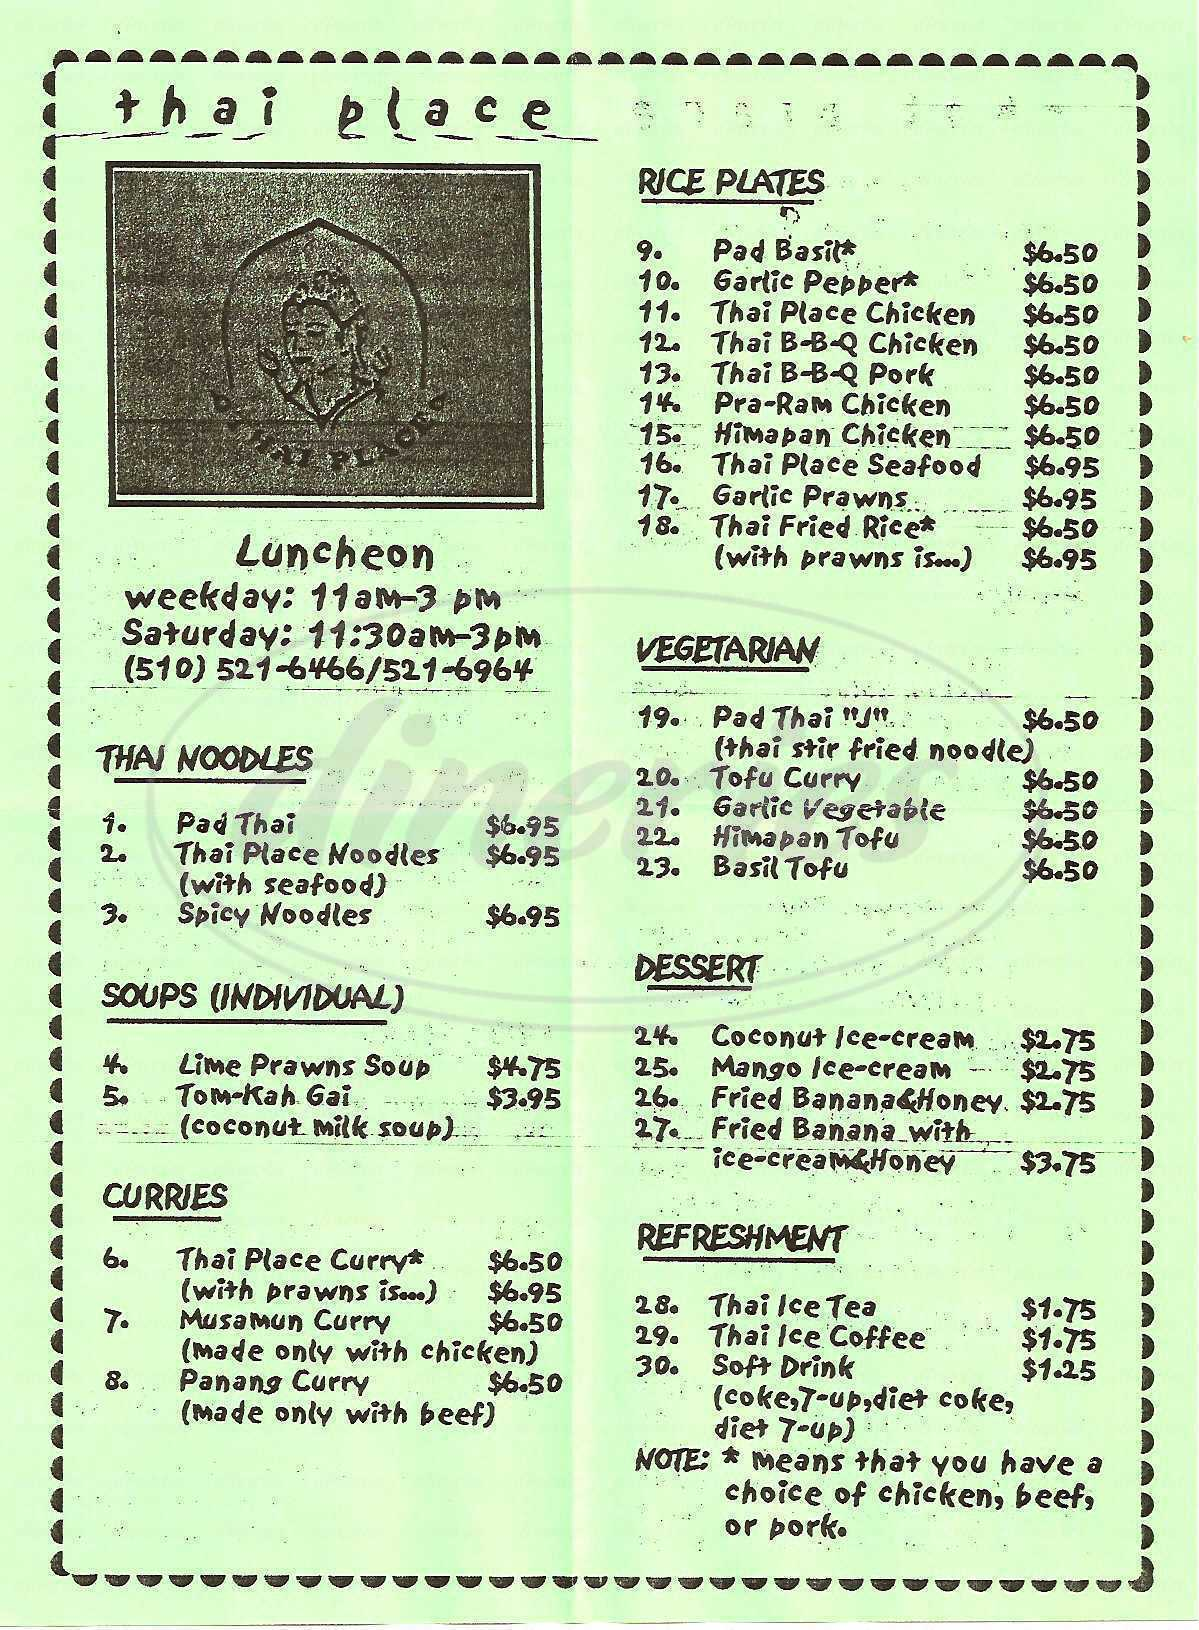 menu for Thai Place